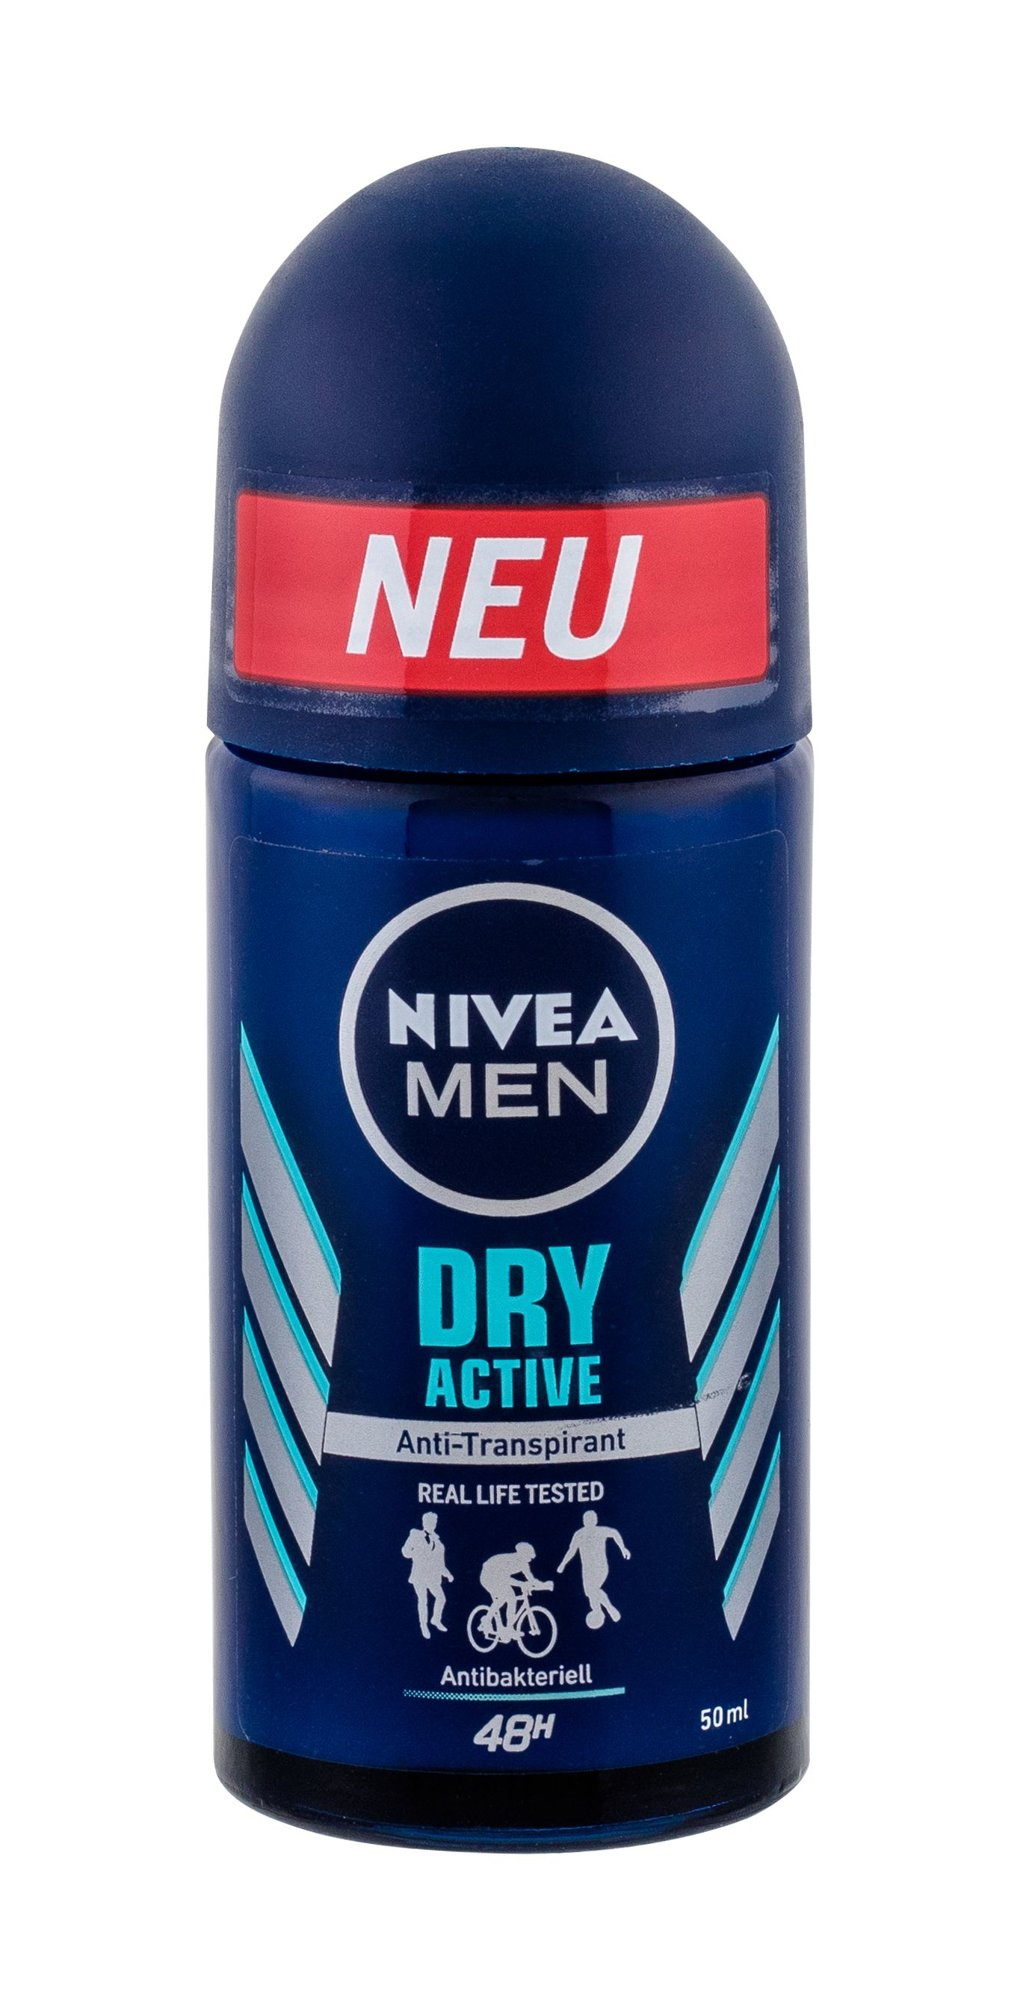 Nivea Men Dry Active Antiperspirant 50ml